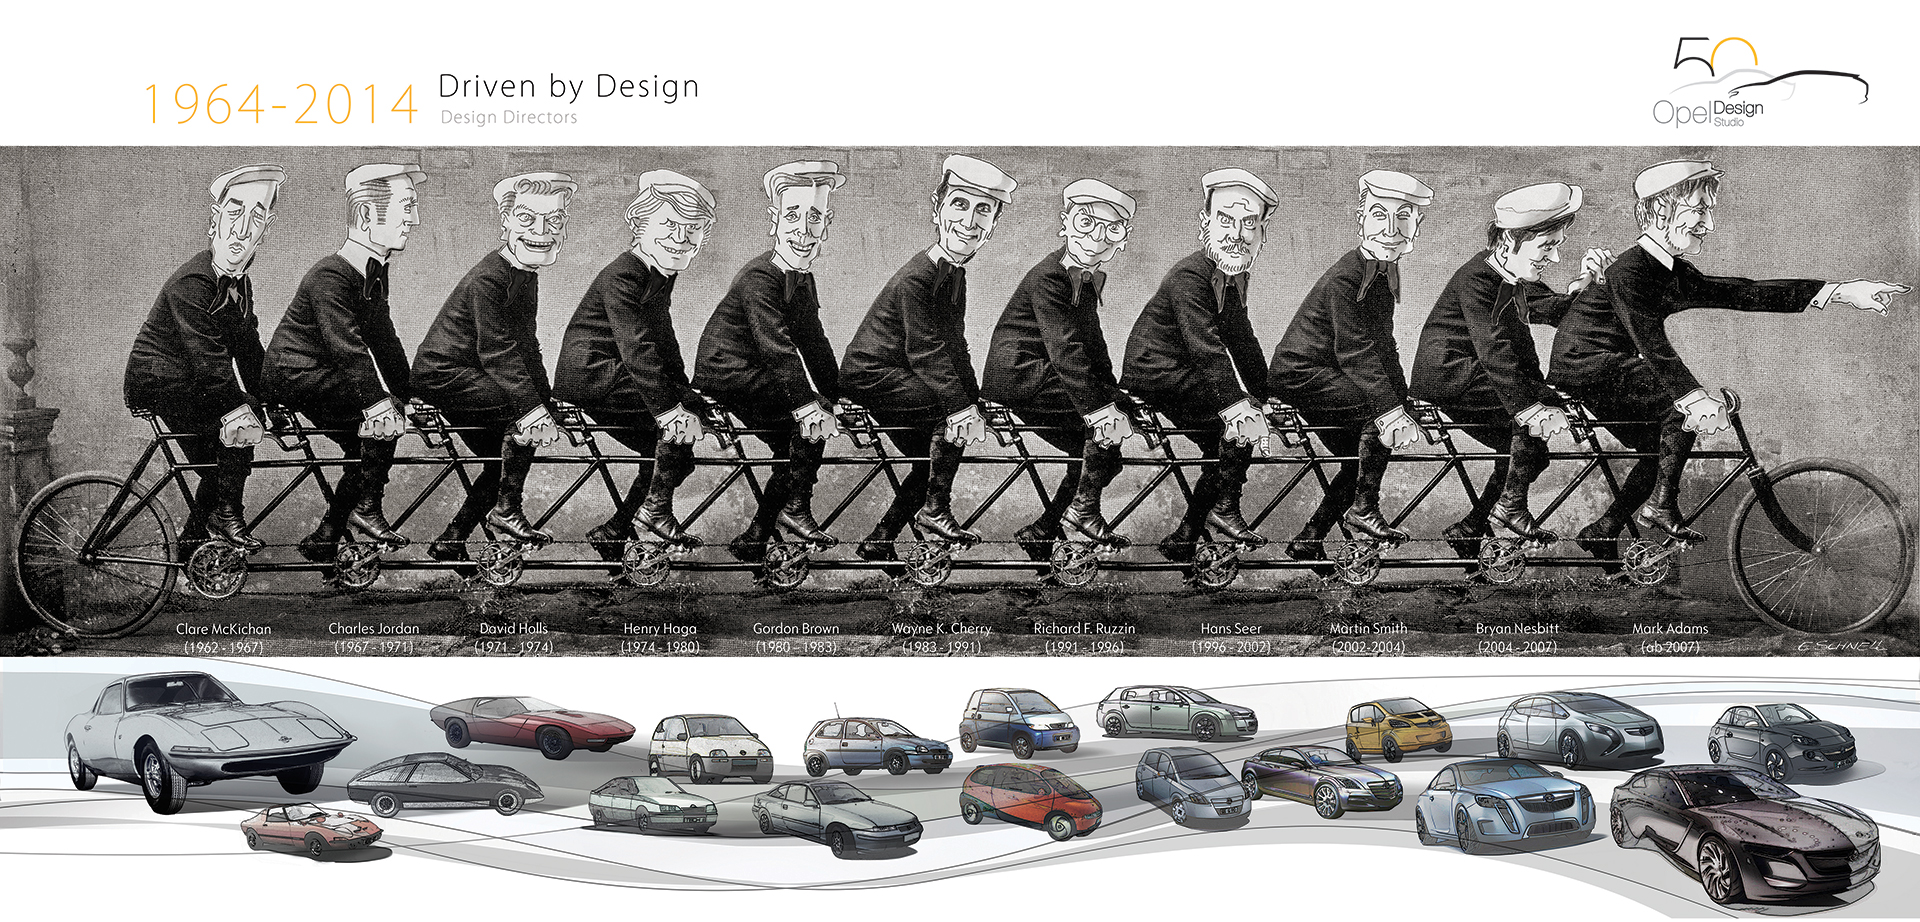 Design Opel 50 Years of Innovation - Image - GM Company.